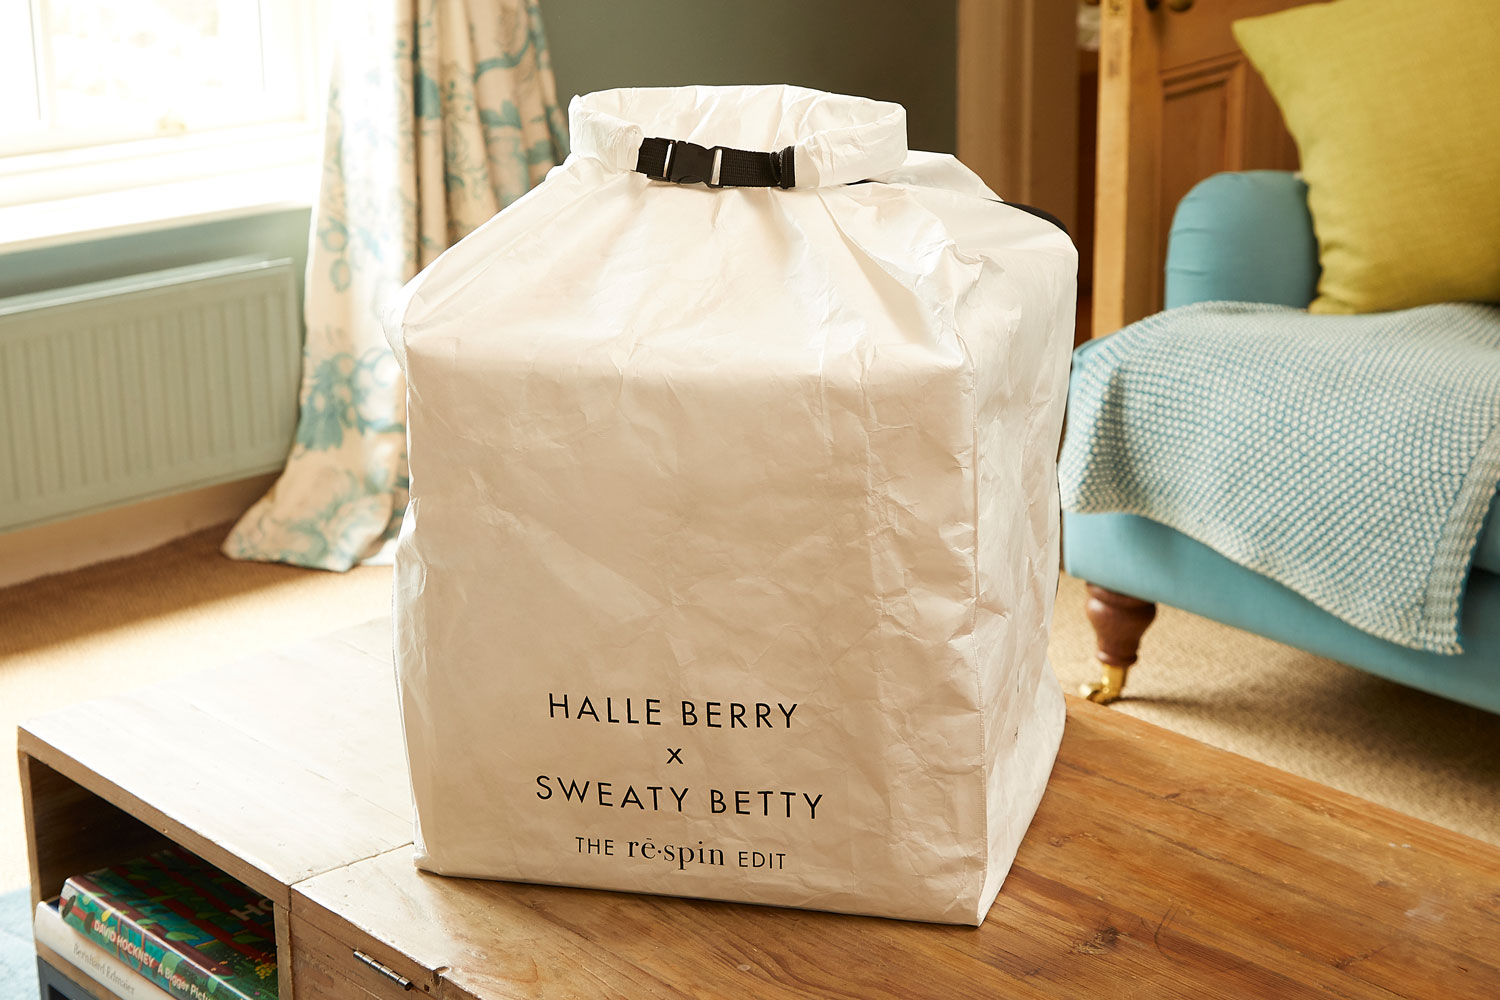 Vip Gifting Packaging Production Manufacture Halle Berry Sweaty Betty Handmade Launch A List Celebrity Tyvek Colorplan G F Smith Luxury Box Custom Bag Limited Edition Progress 12